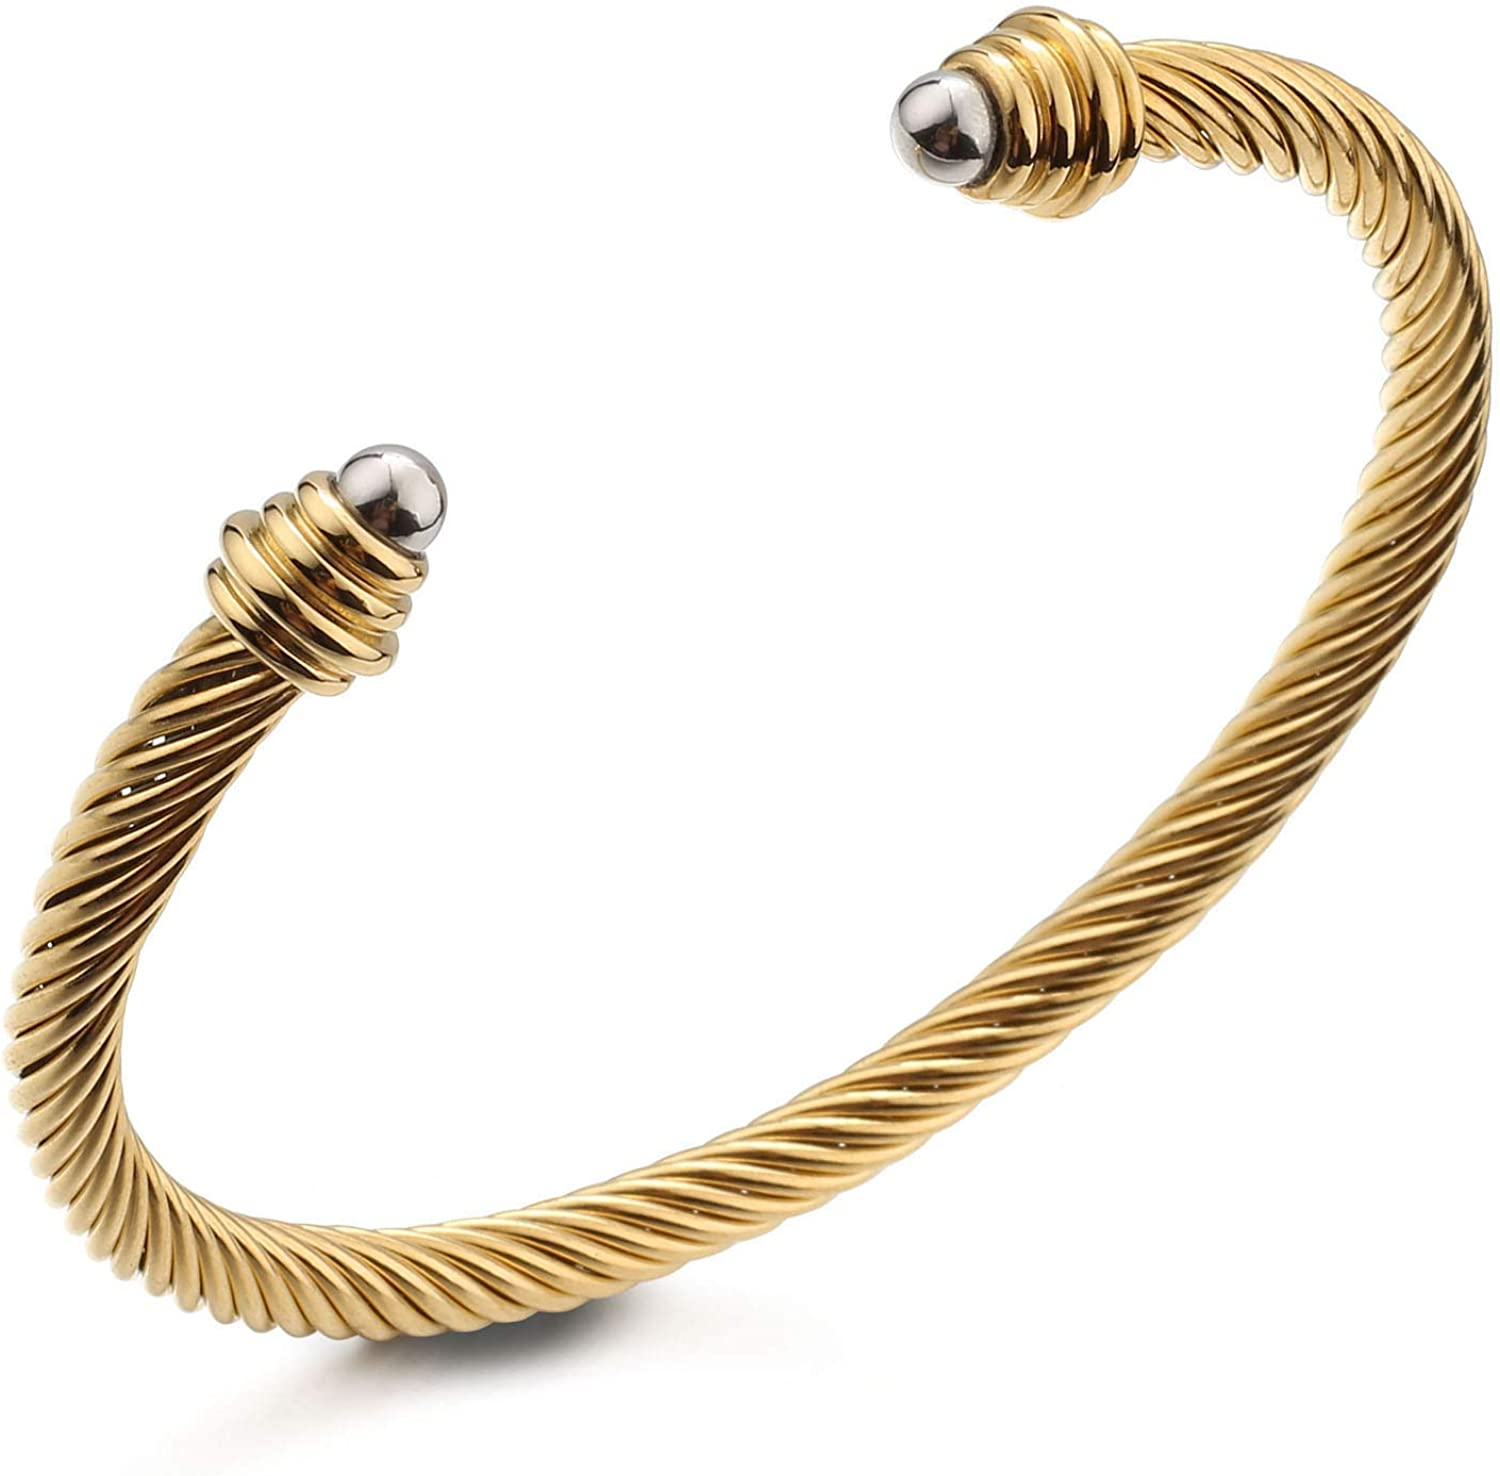 Cable Limited time cheap sale Wire New Orleans Mall Cuff Bangle Bracelets Women Ste Stainless Dorriss for